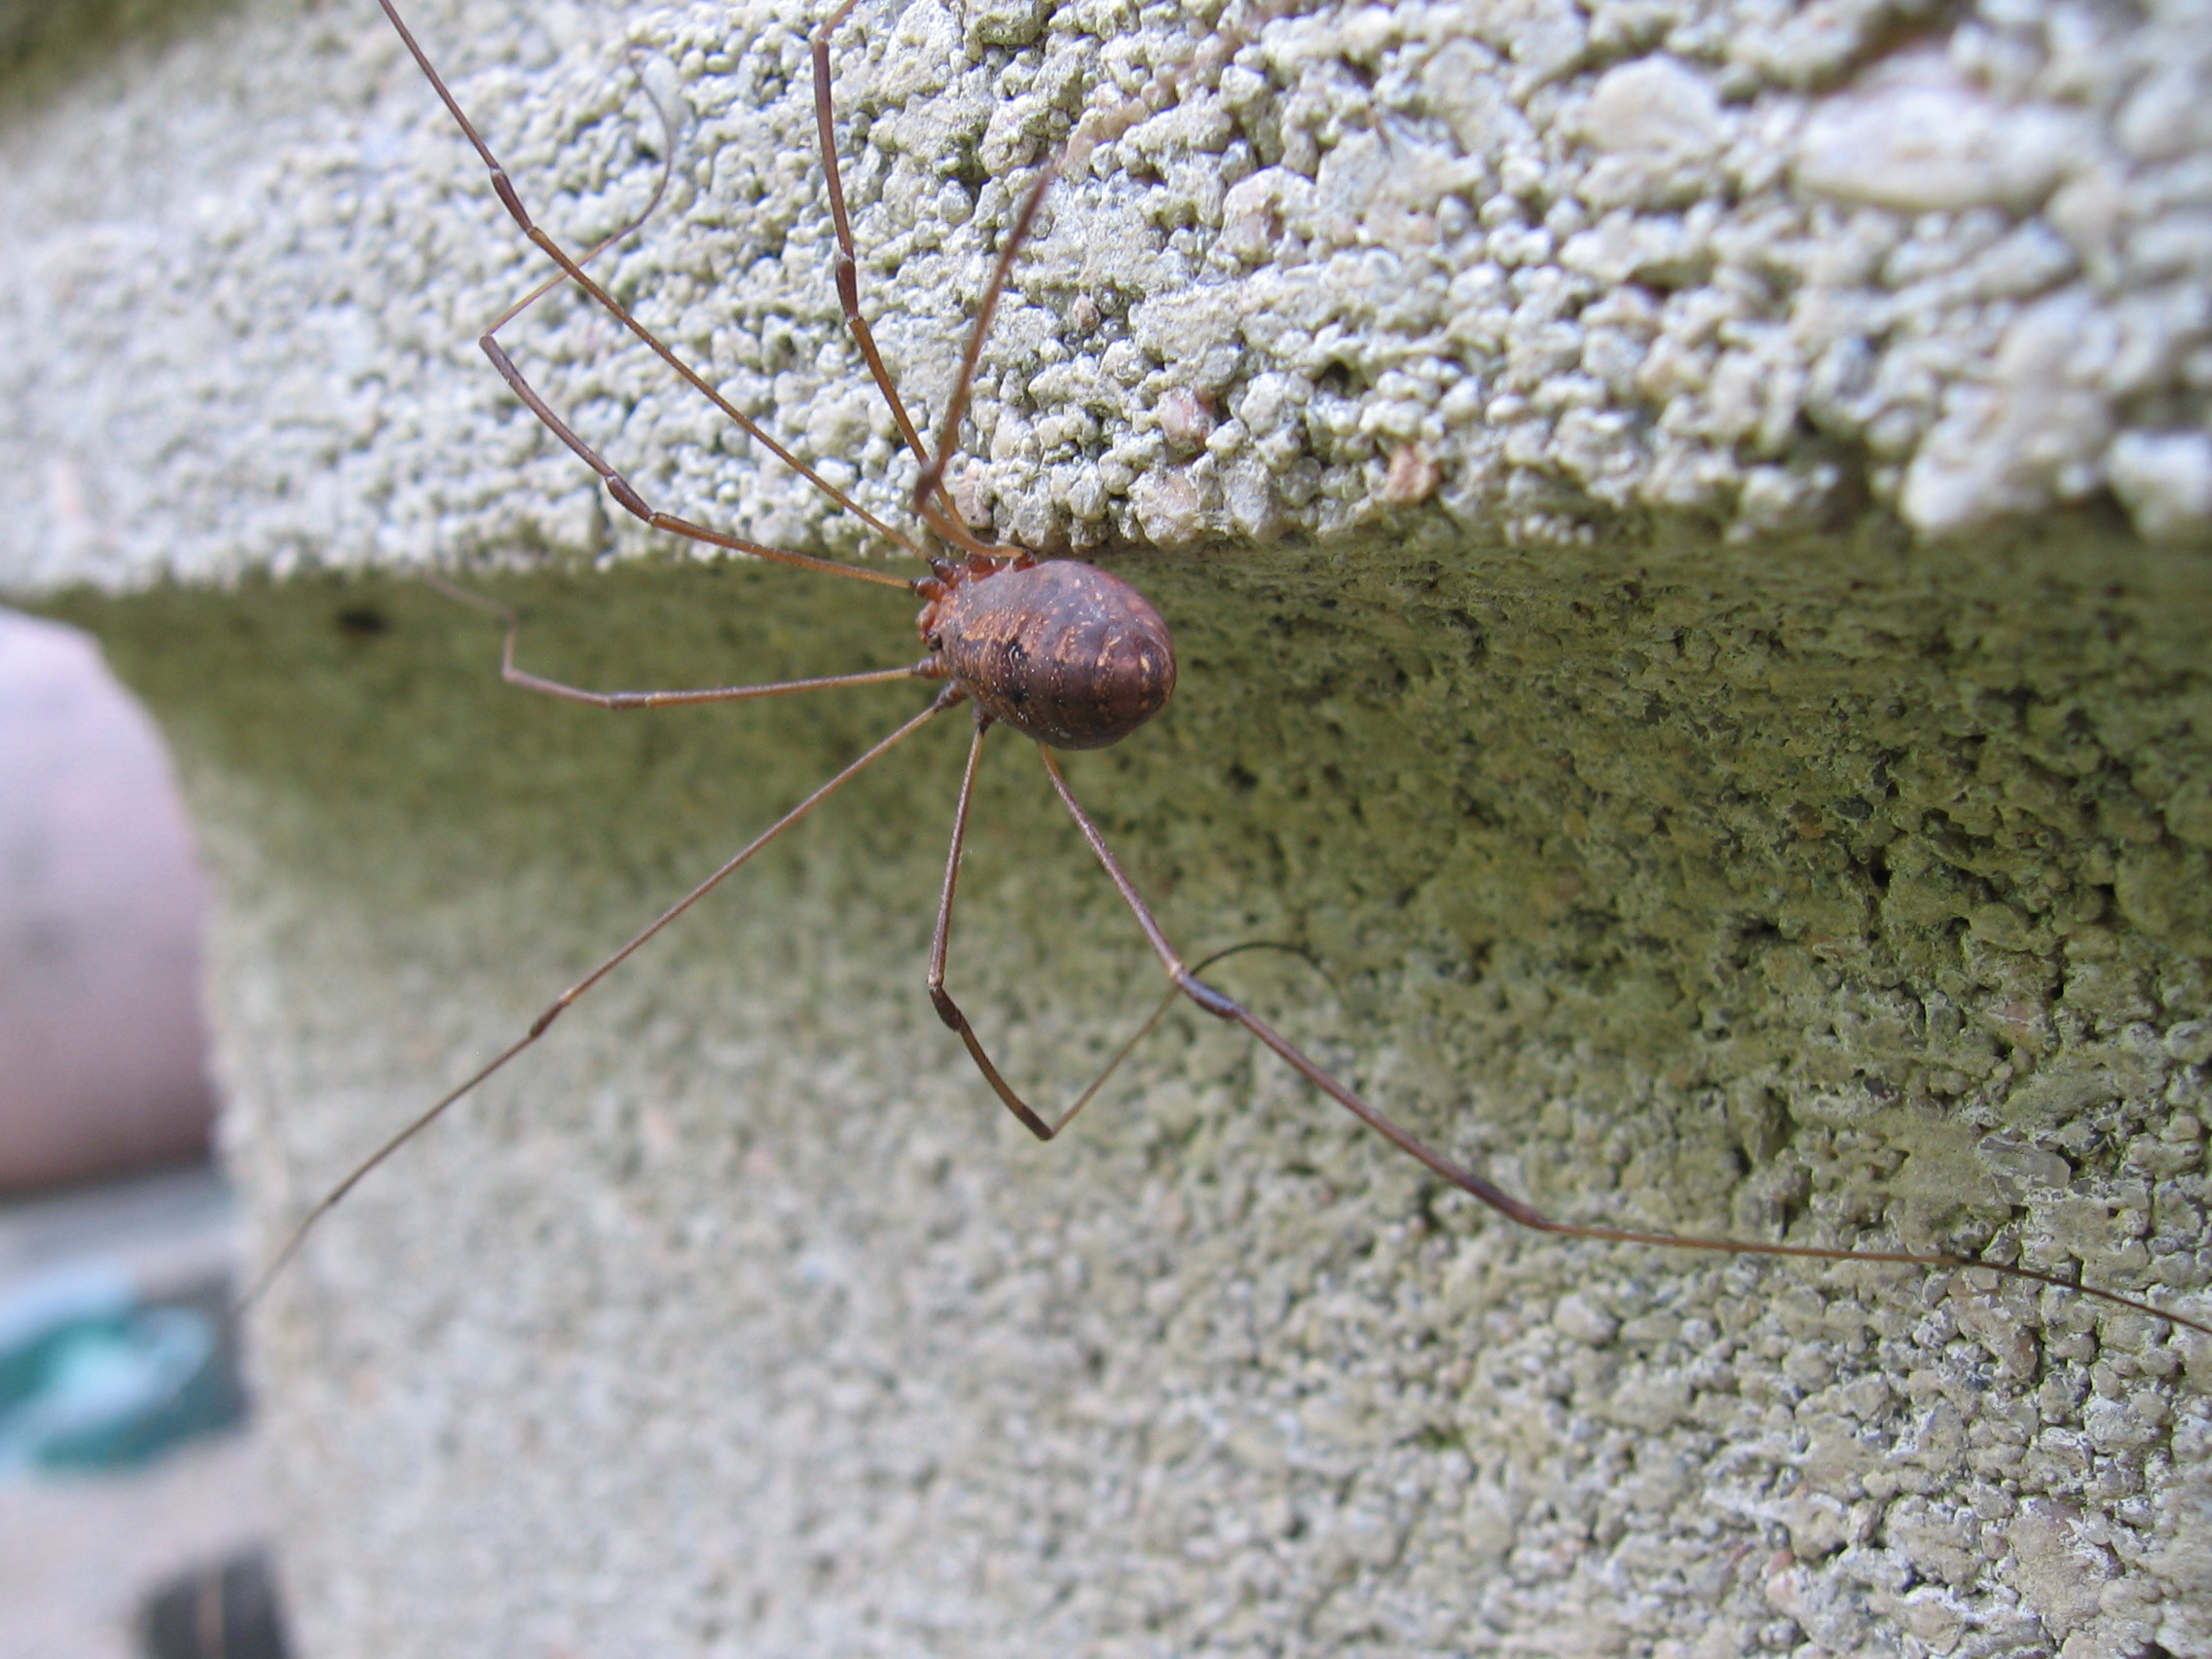 Daddy Long Legs, Animal, Bspo06, Insect, Longlegs, HQ Photo